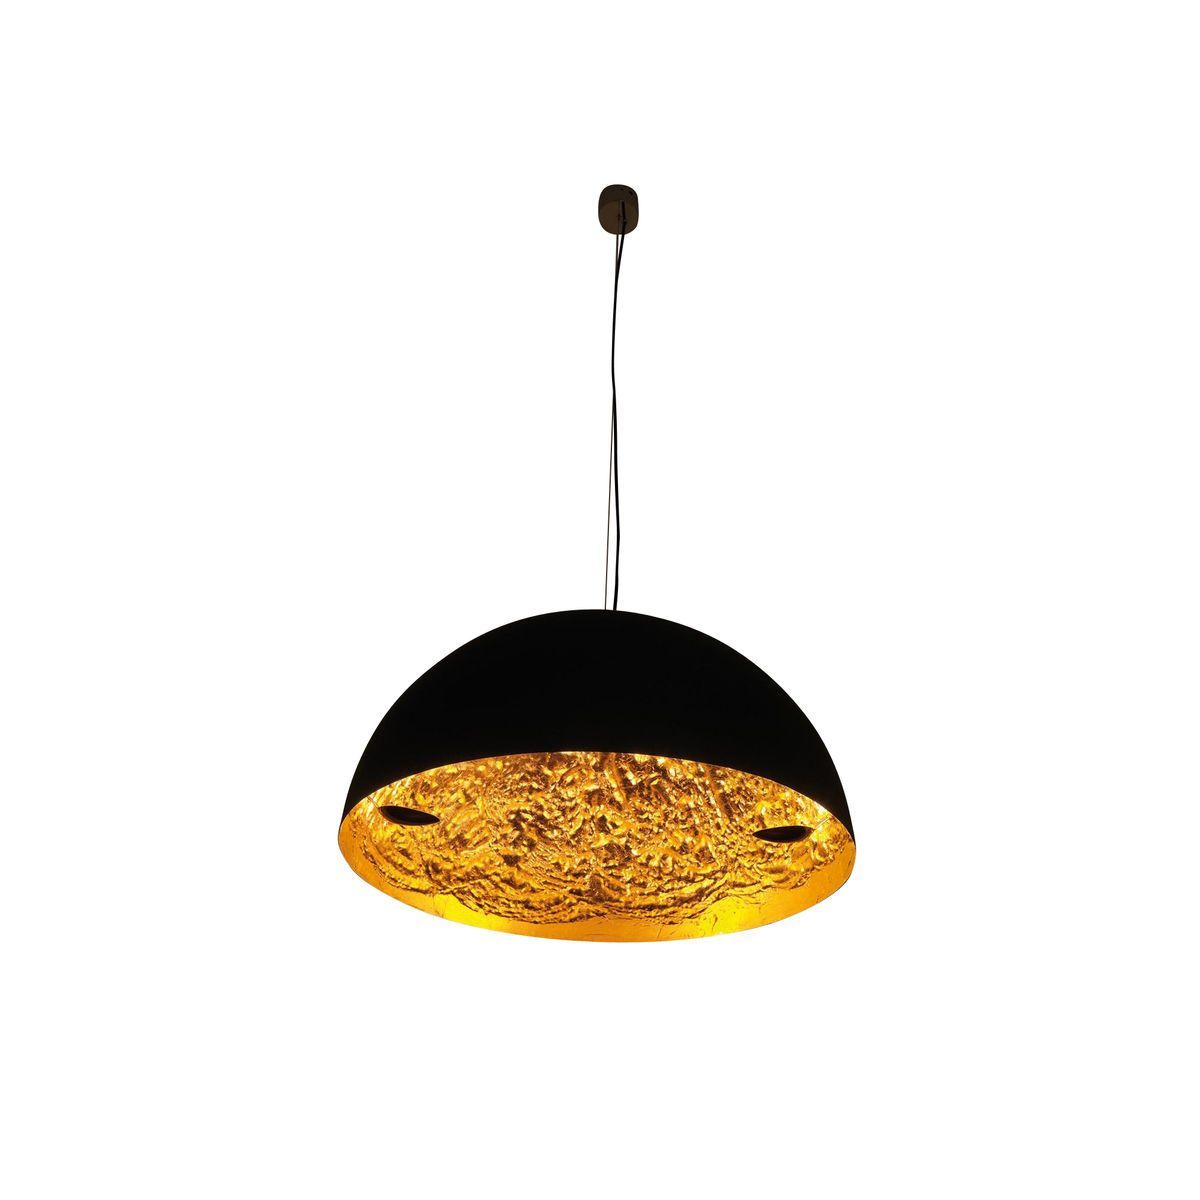 stchu moon 02 suspension lamp 40 60 catellani smith. Black Bedroom Furniture Sets. Home Design Ideas